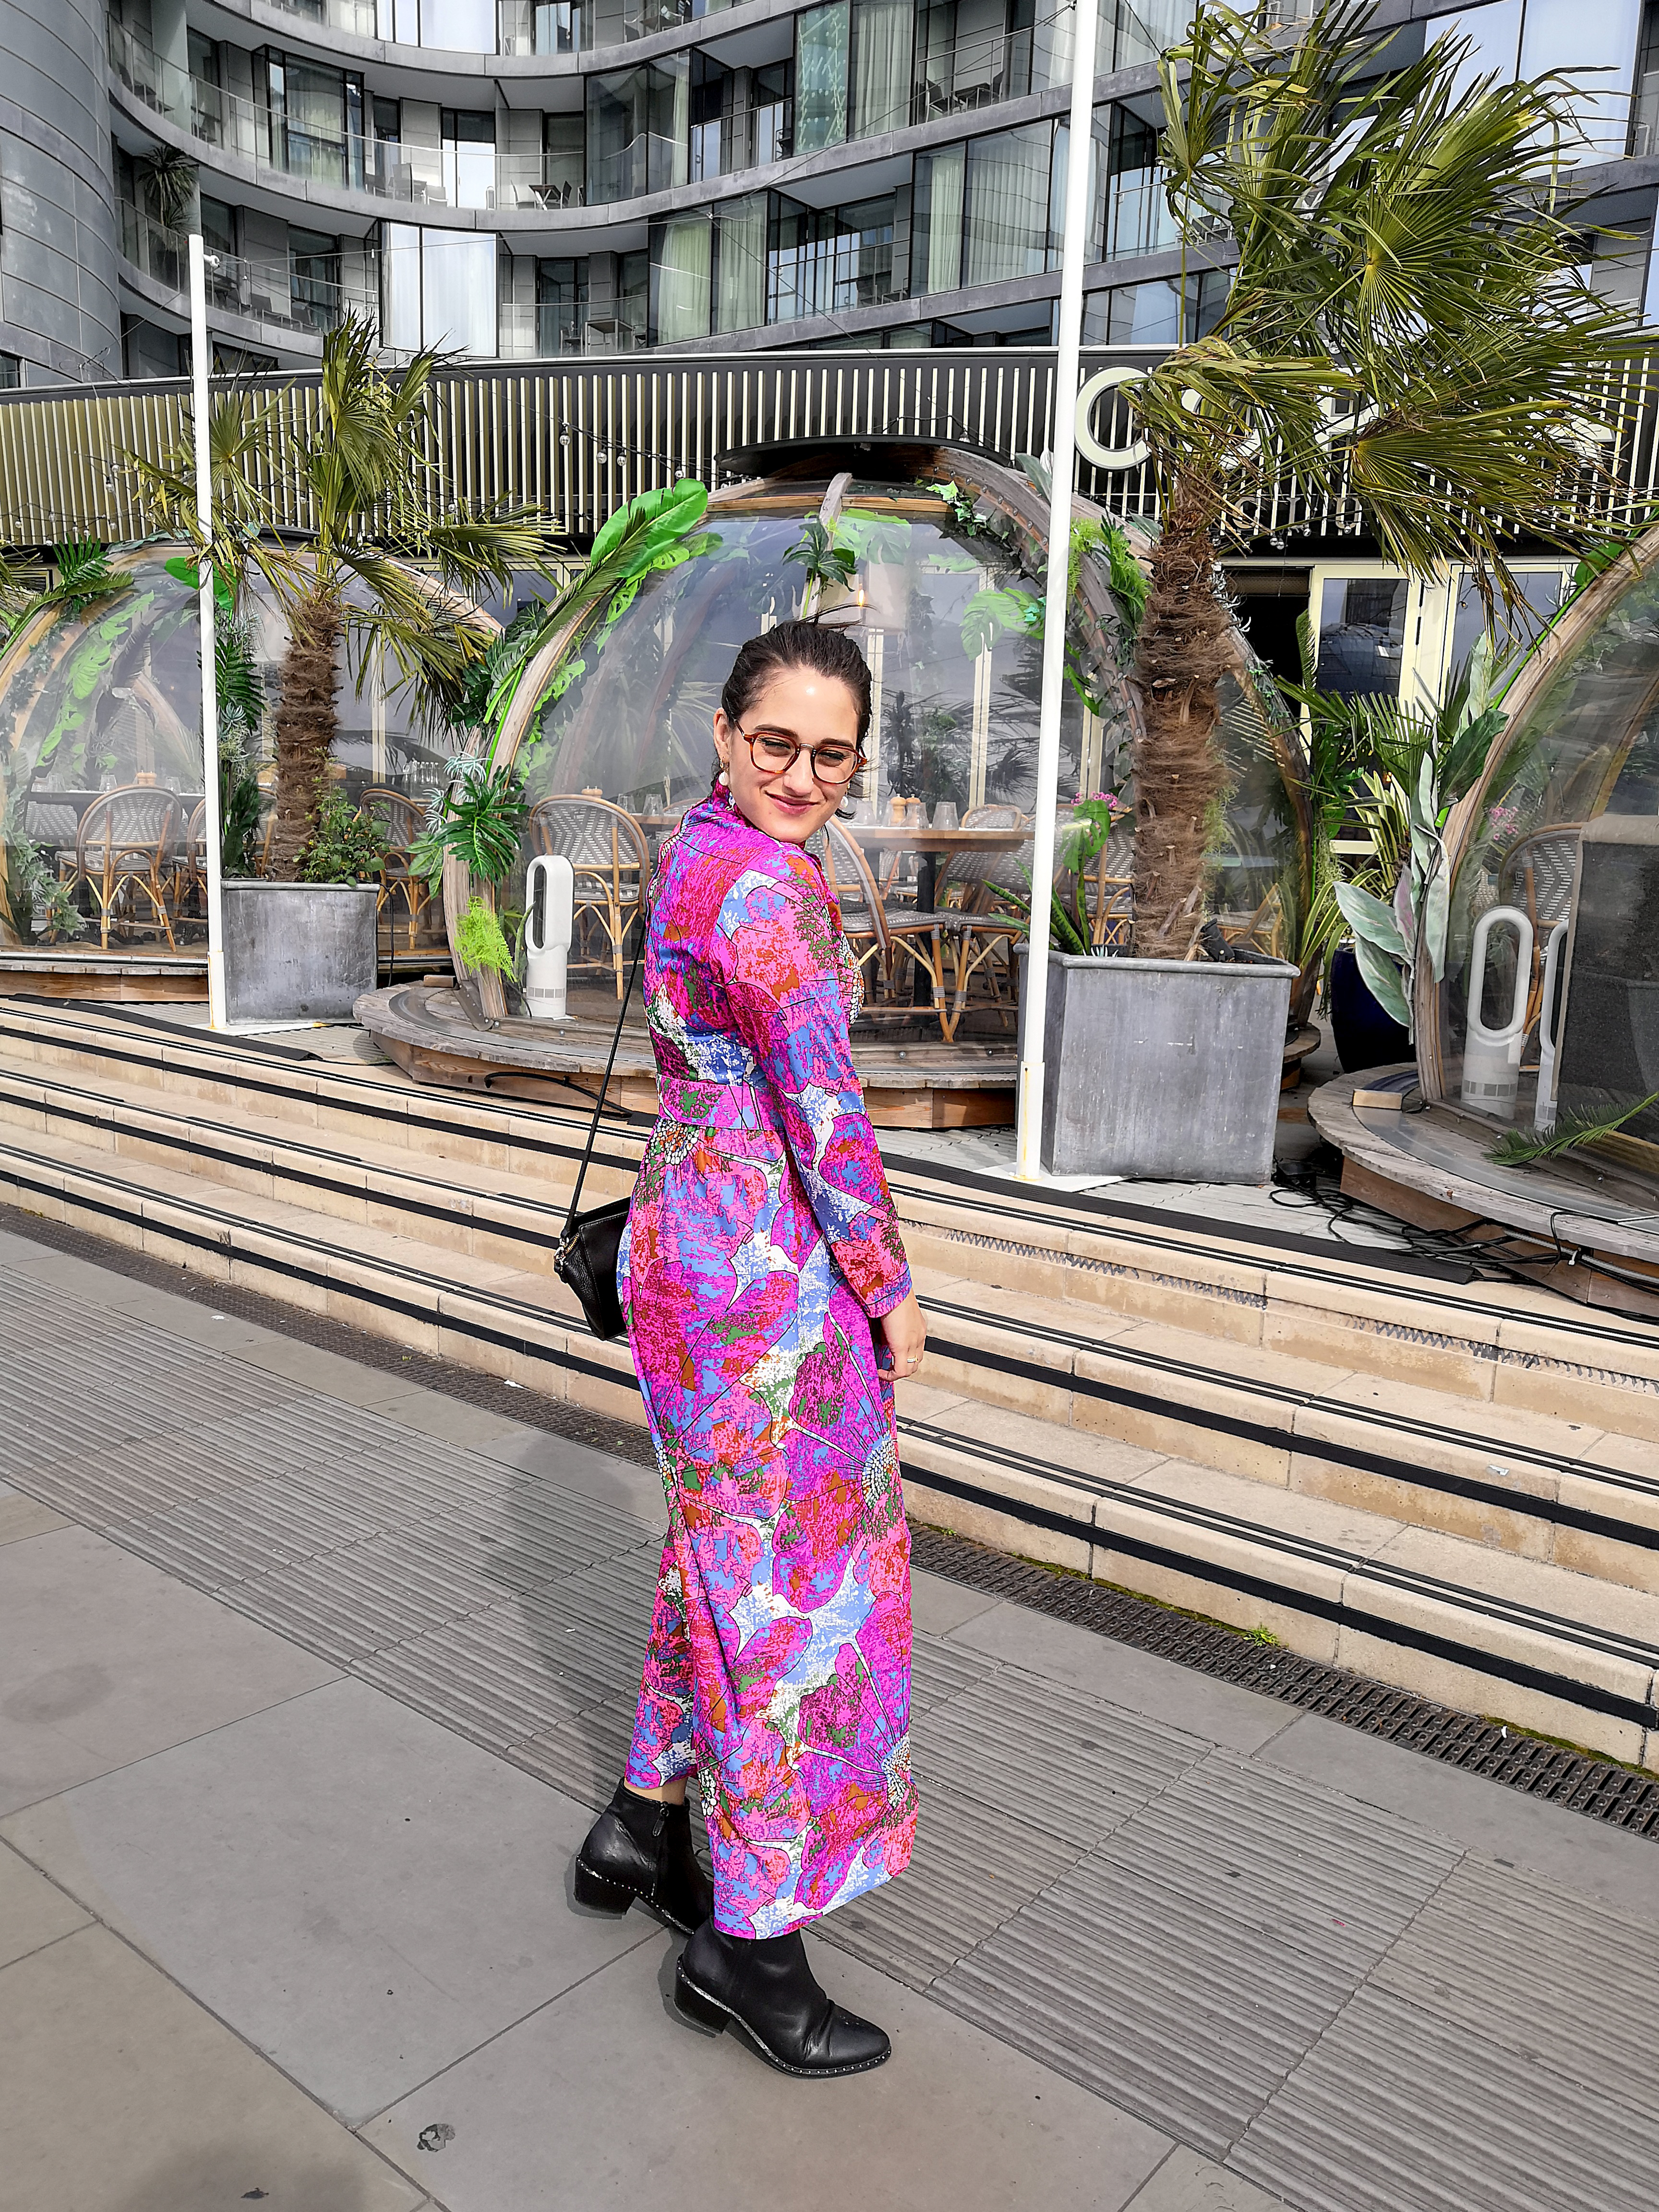 Katie wears a pink, blue and white multi colour vintage maxi dress with long sleeves, high neck, matching belt and black shoes and a small black shoulder bag. Her hair is pulled back in a pony tail and she's standing in front of the surfer shacks at Copa Club on Tower Bridge.